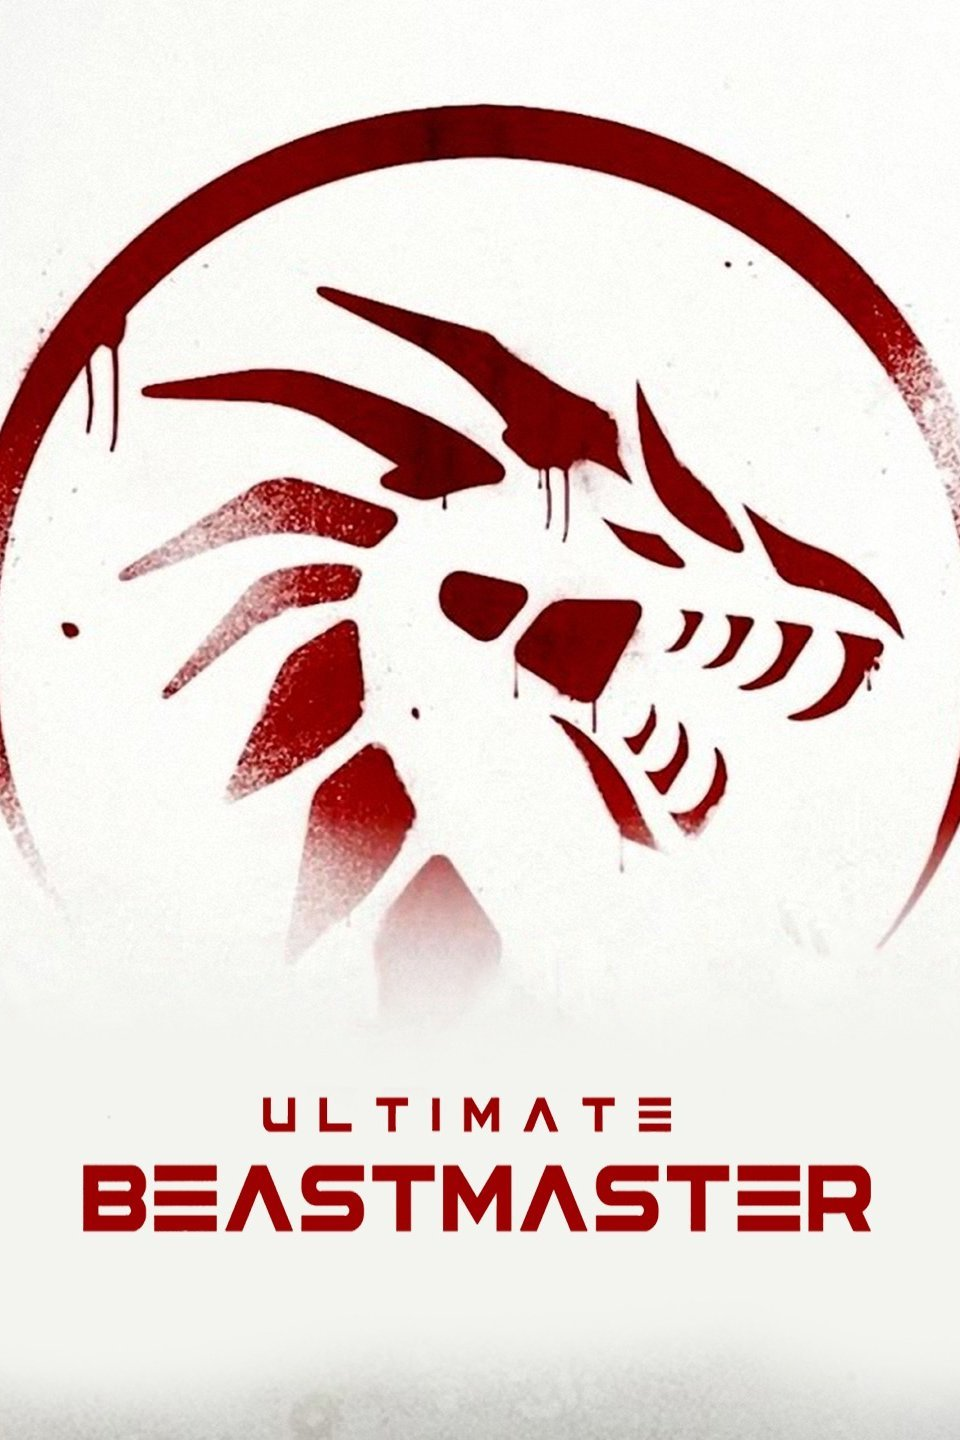 Ultimate Beastmaster Tv Series Download Season 1 Complete 480p WEB-DL